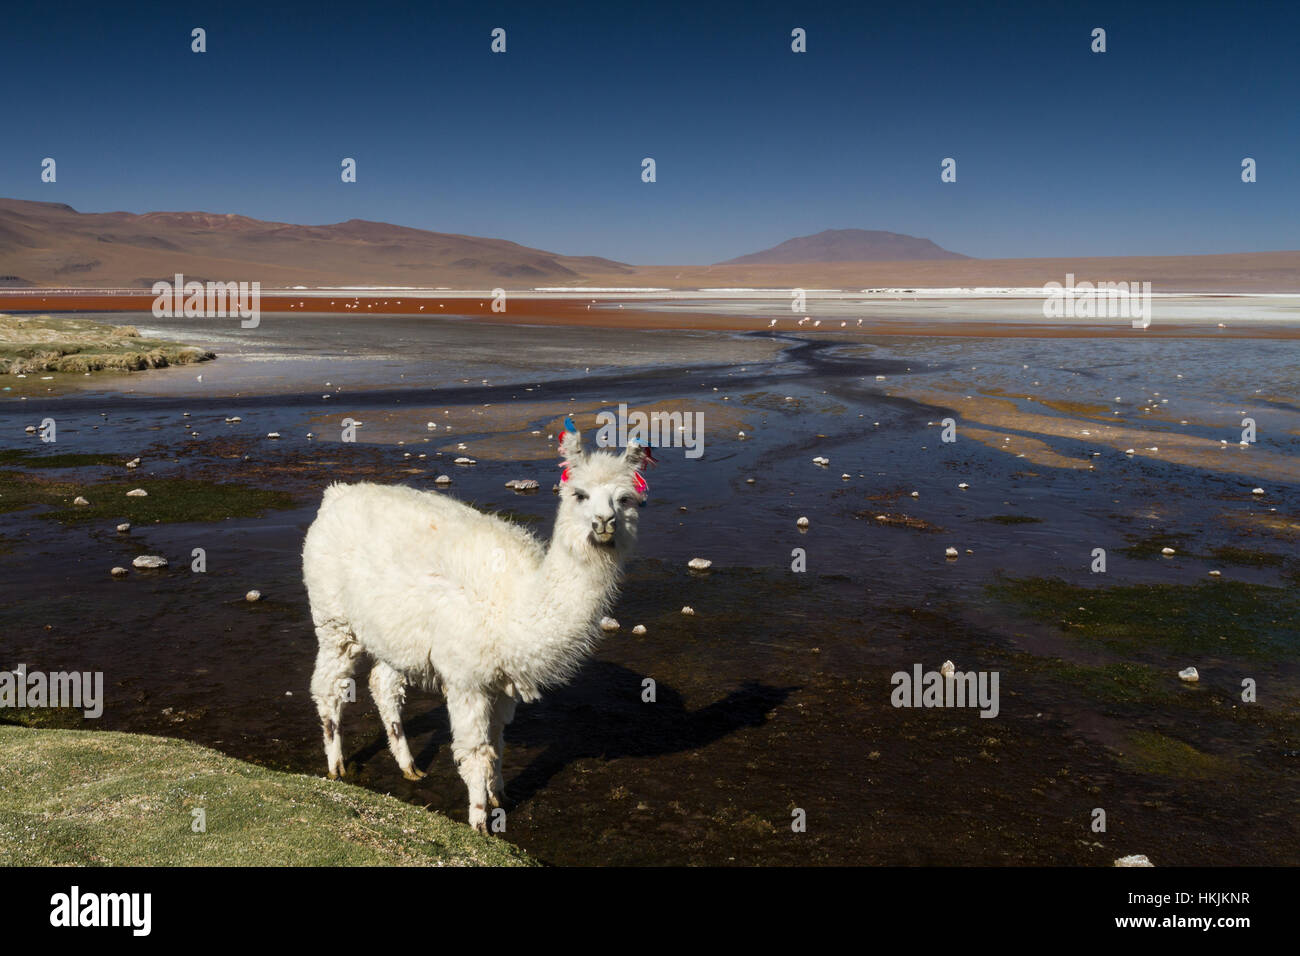 White Alpaca at Laguna Colorada, Altiplano, Bolivia - Stock Image